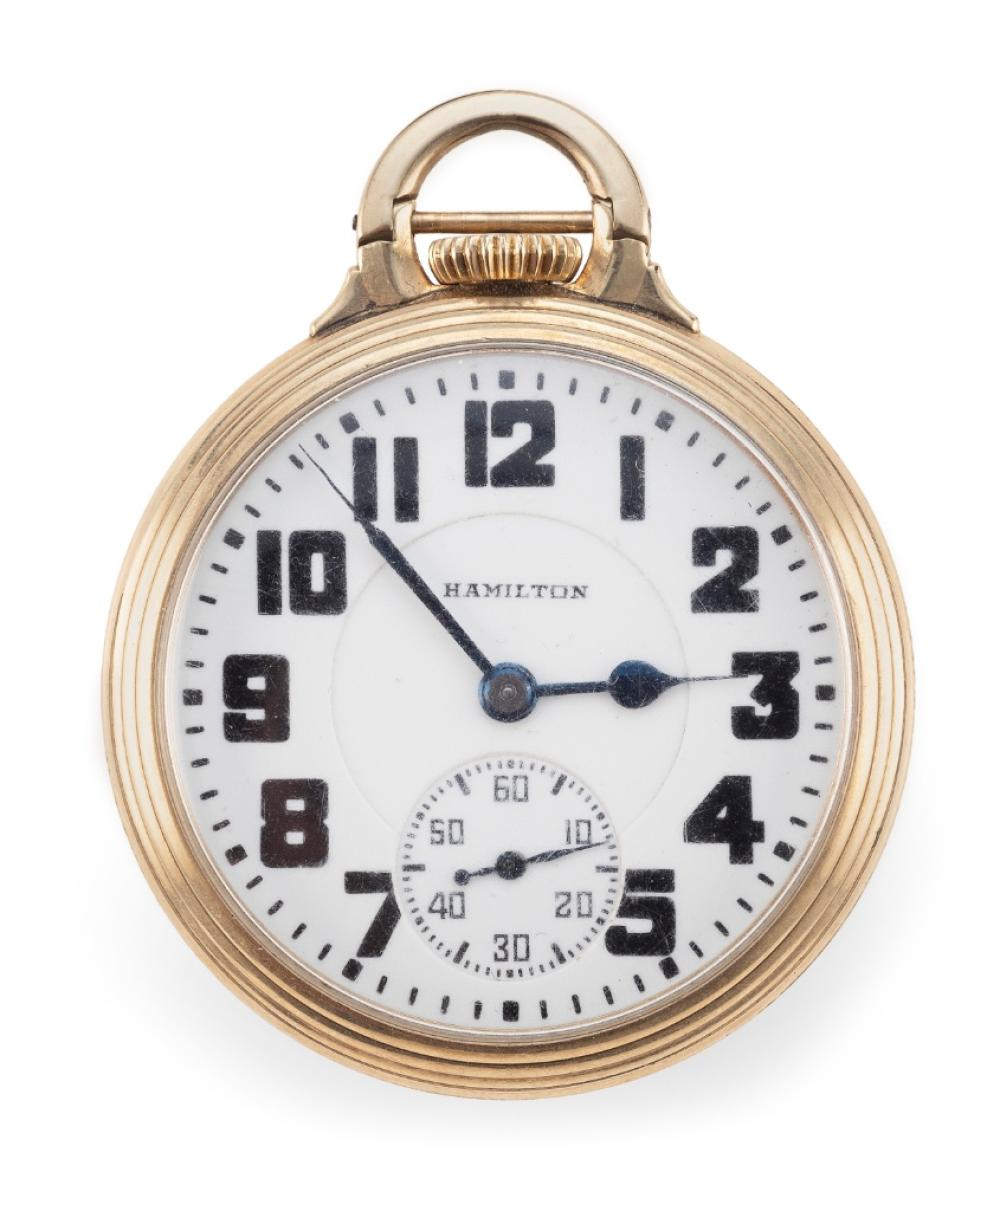 HAMILTON GOLD-FILLED OPEN FACE POCKET WATCH